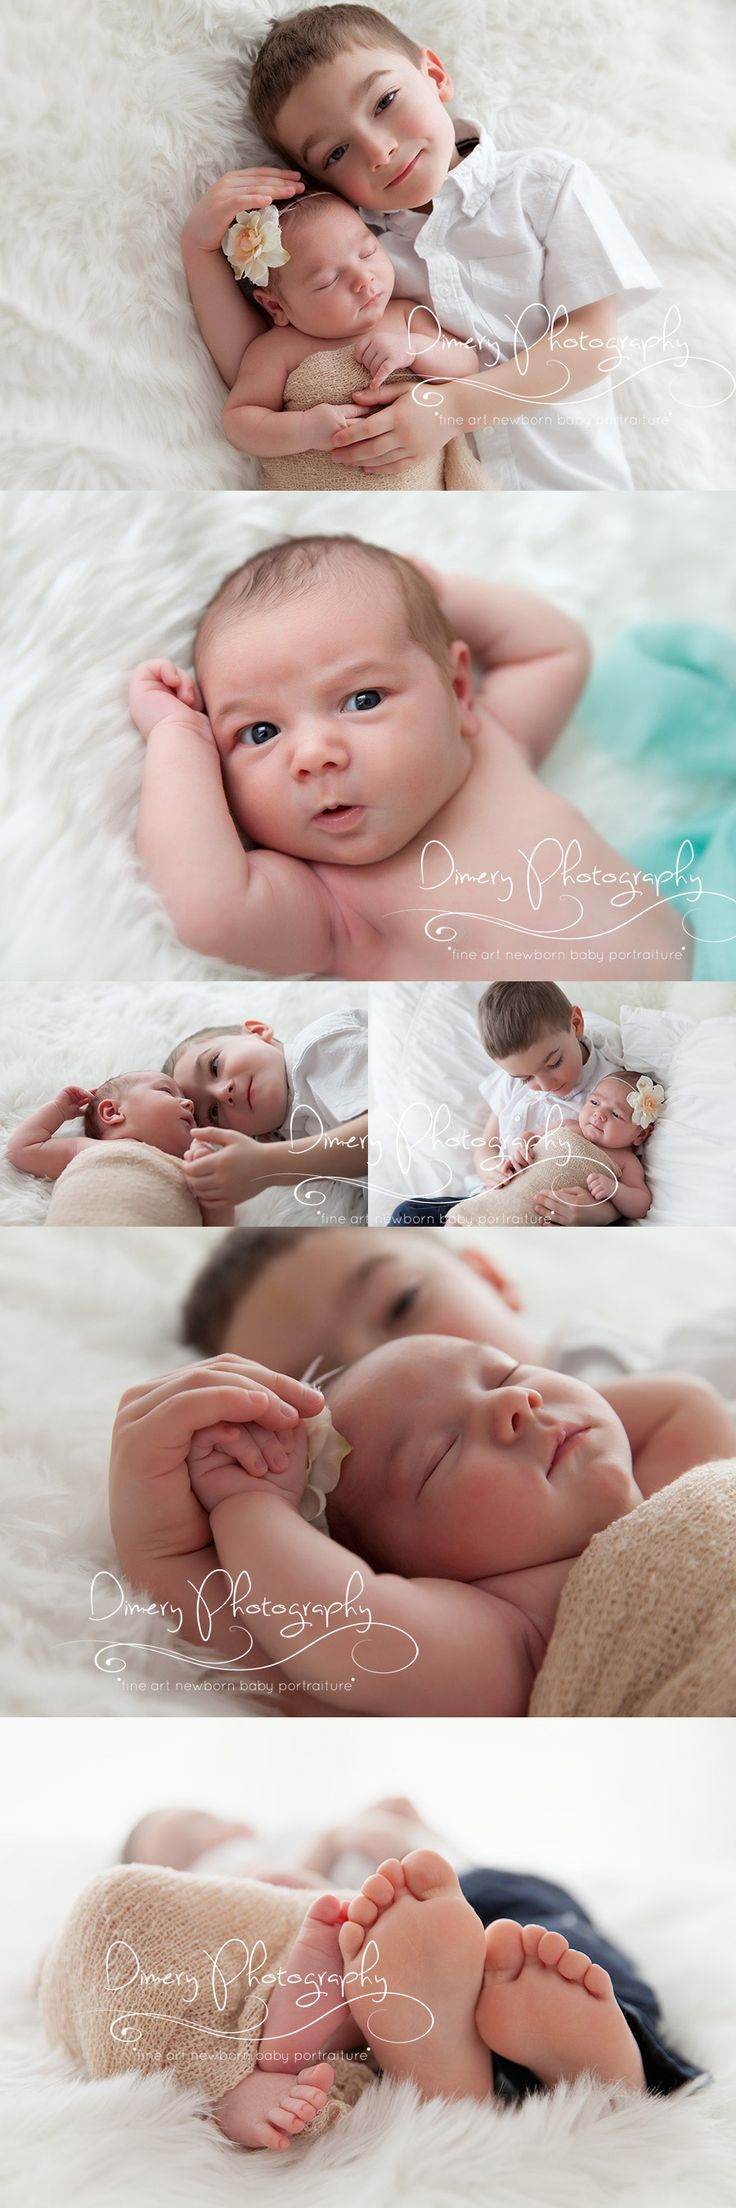 Newborn Photography Poses With Siblings